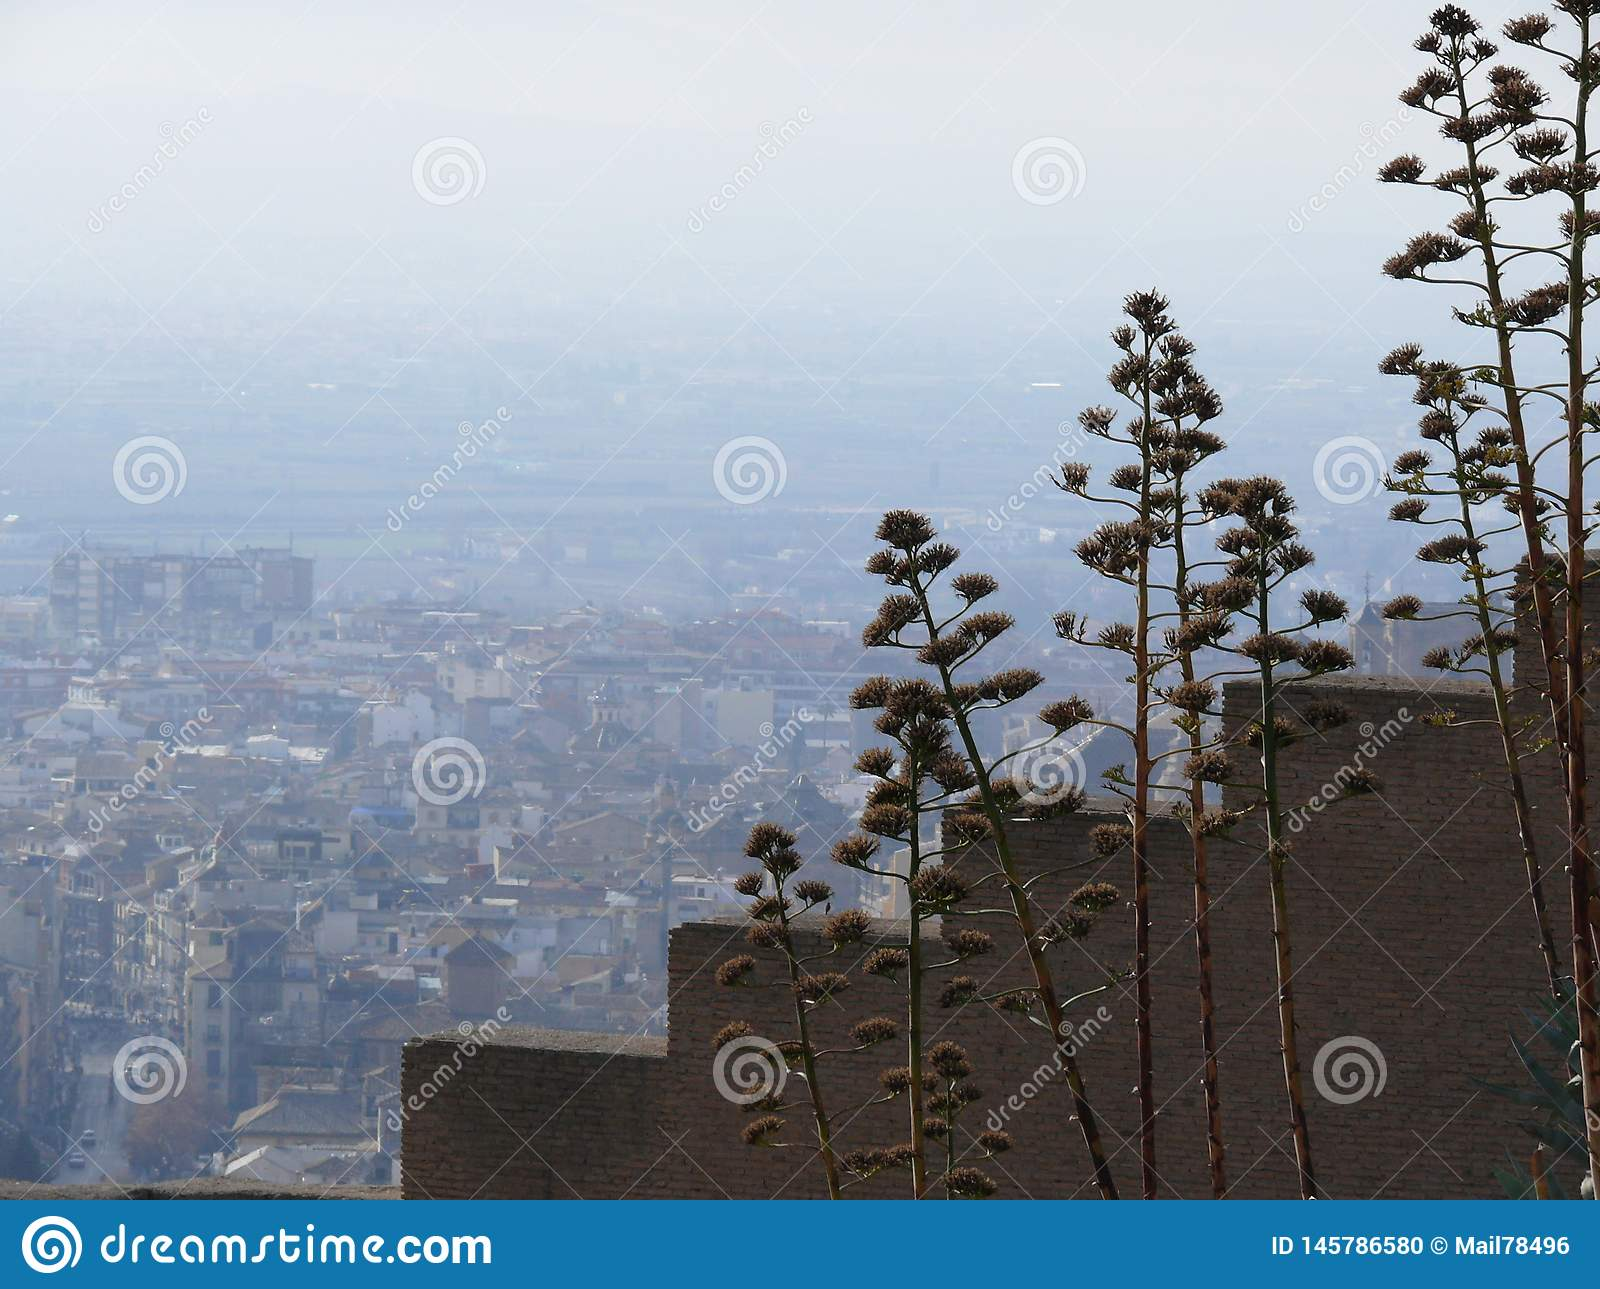 Stepped walls with views of Granada